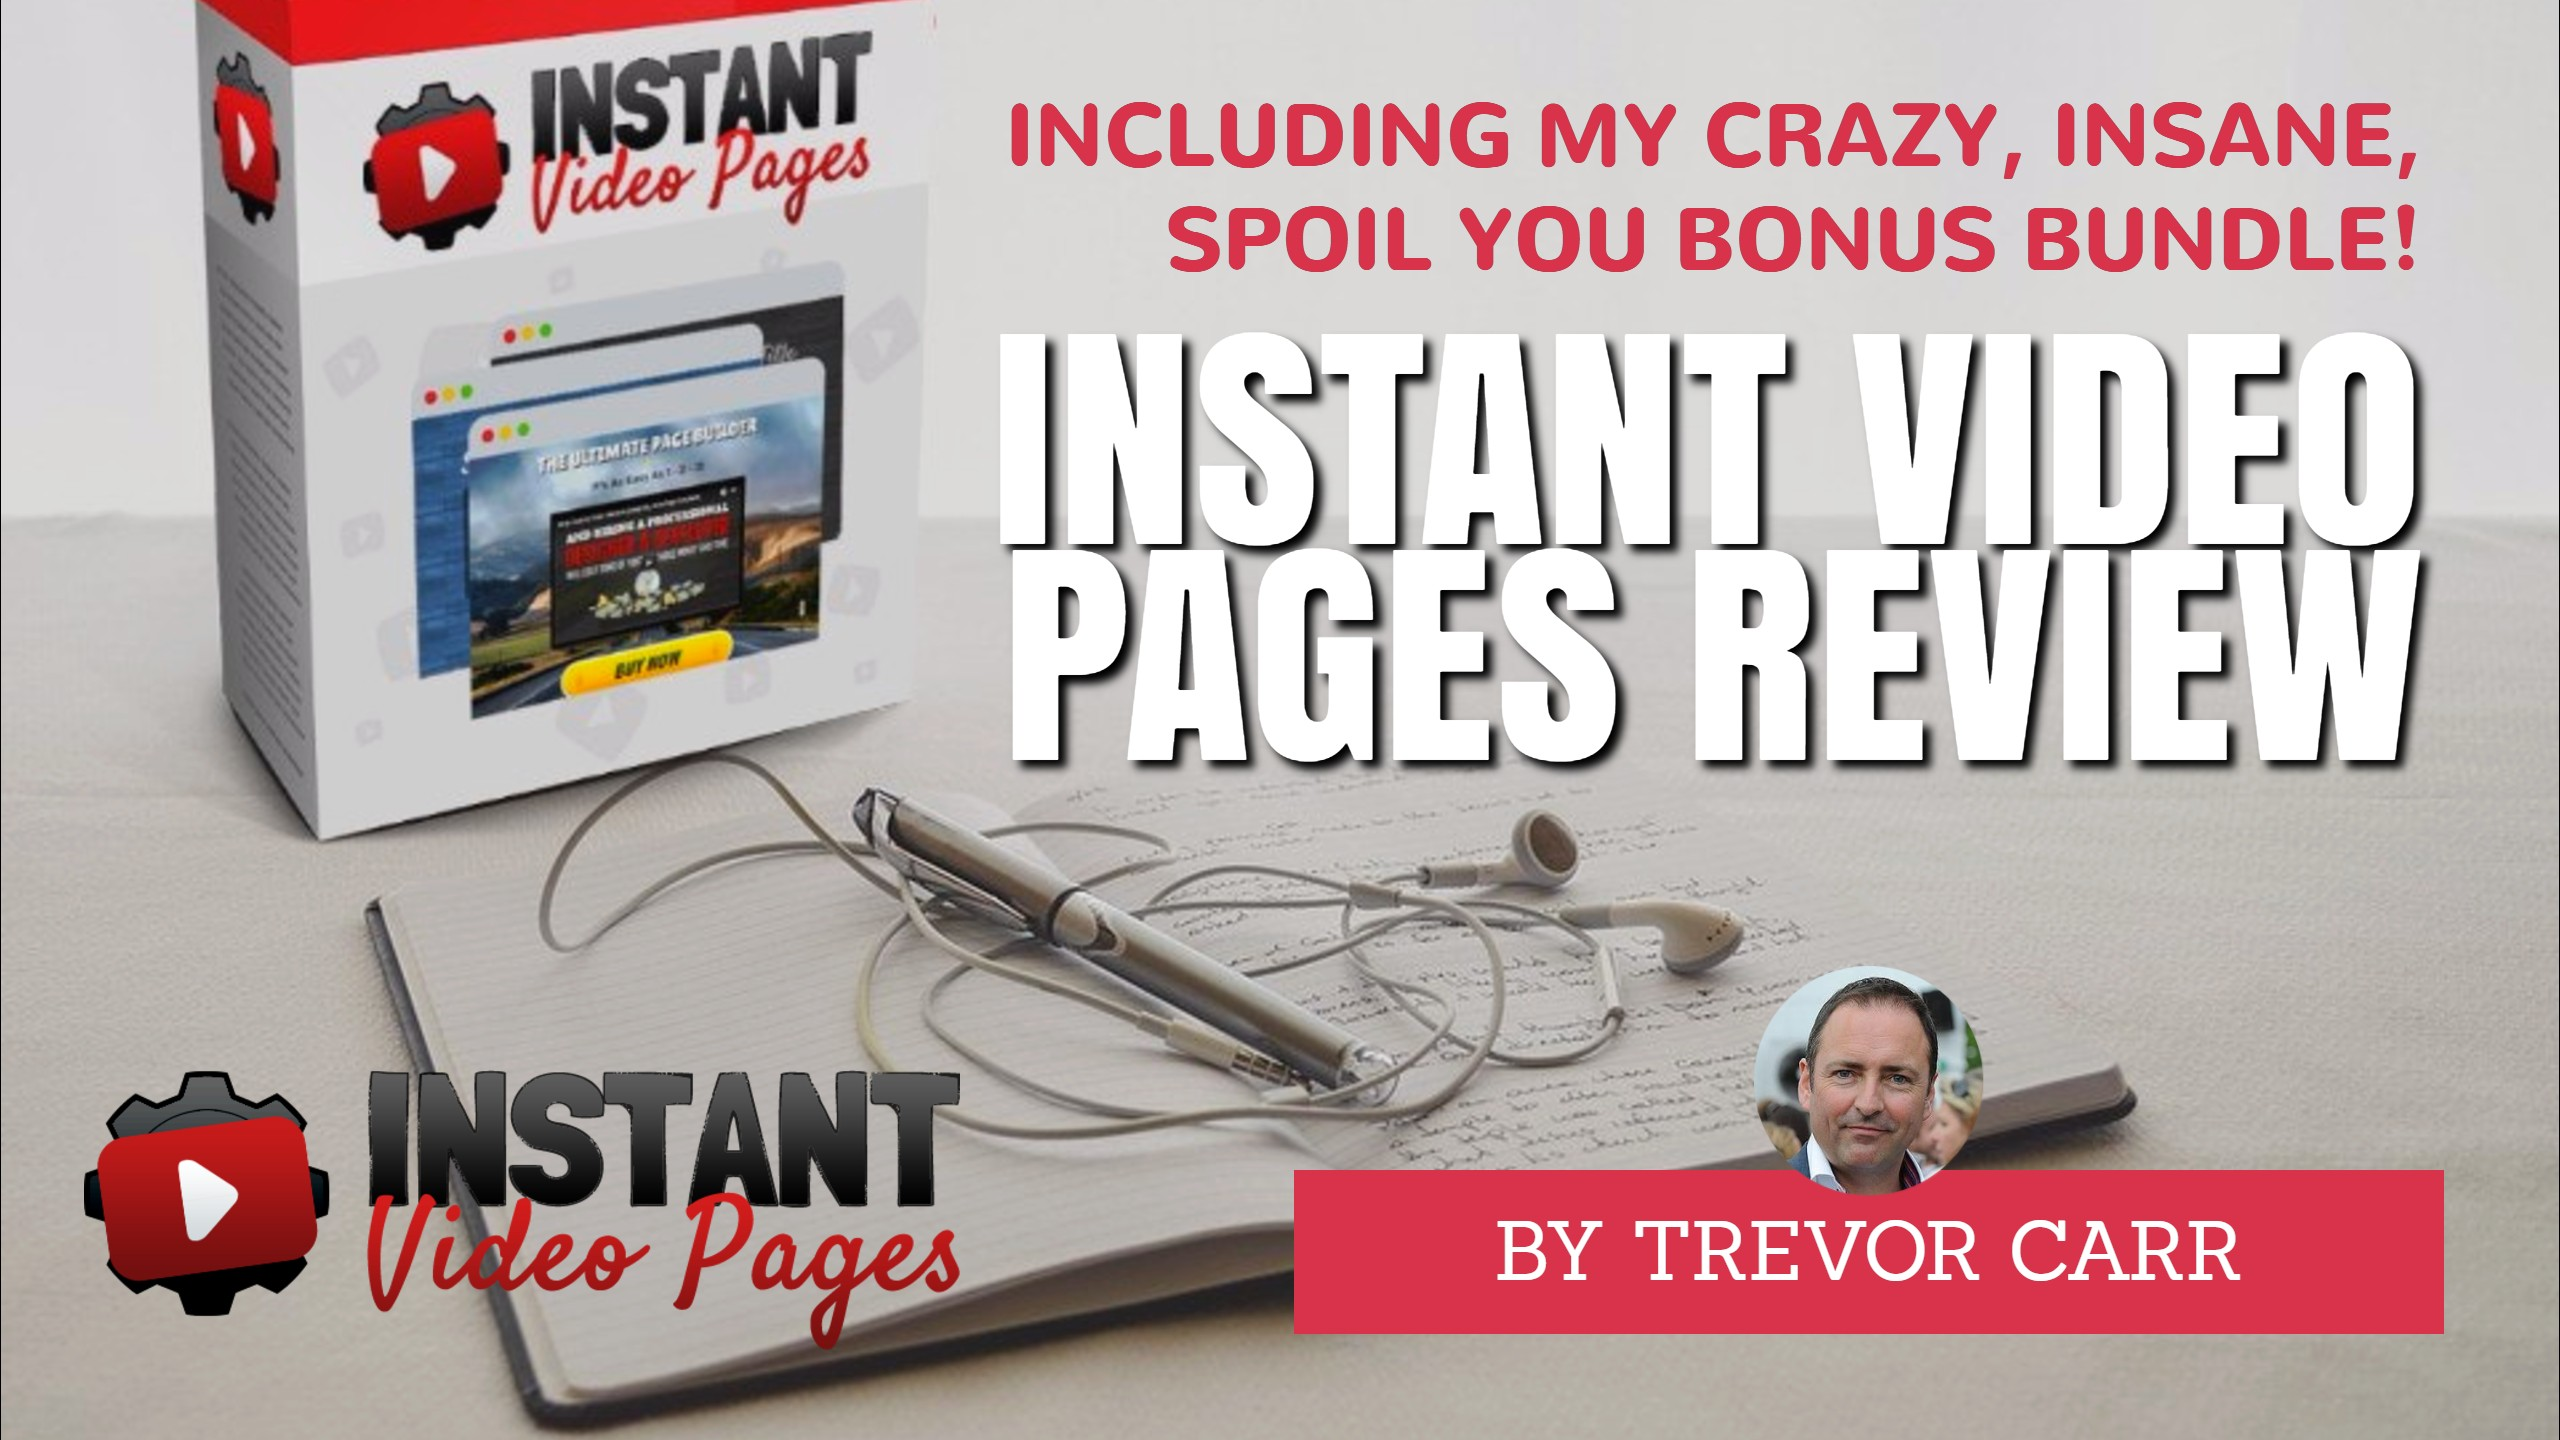 Instant Video Pages Review & Bonuses